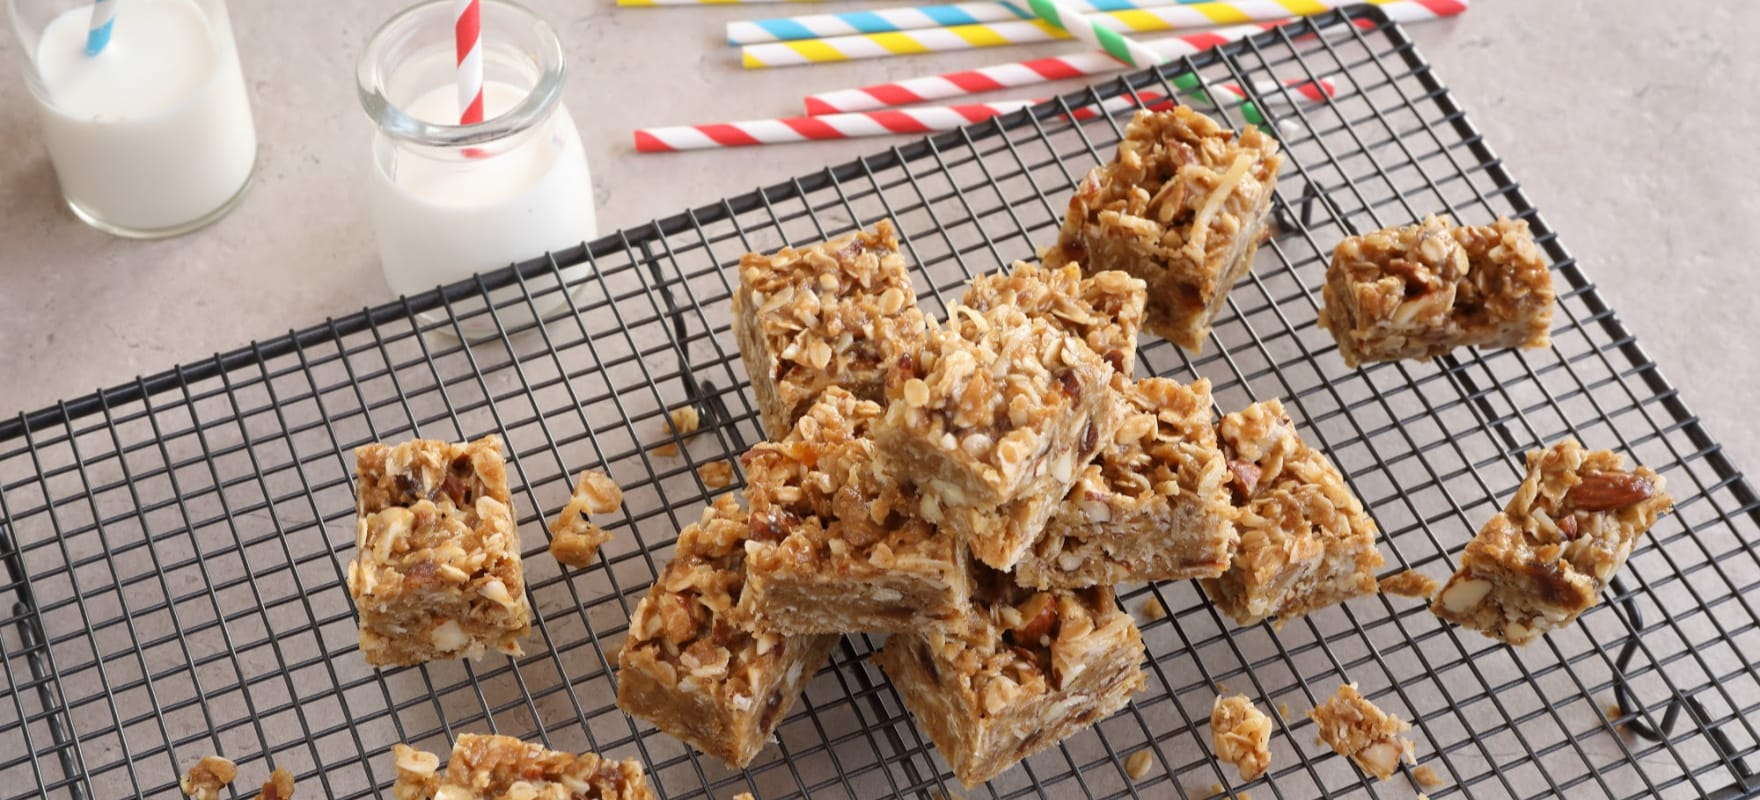 Peanut Butter and Date Weet-Bix™ slice image 1